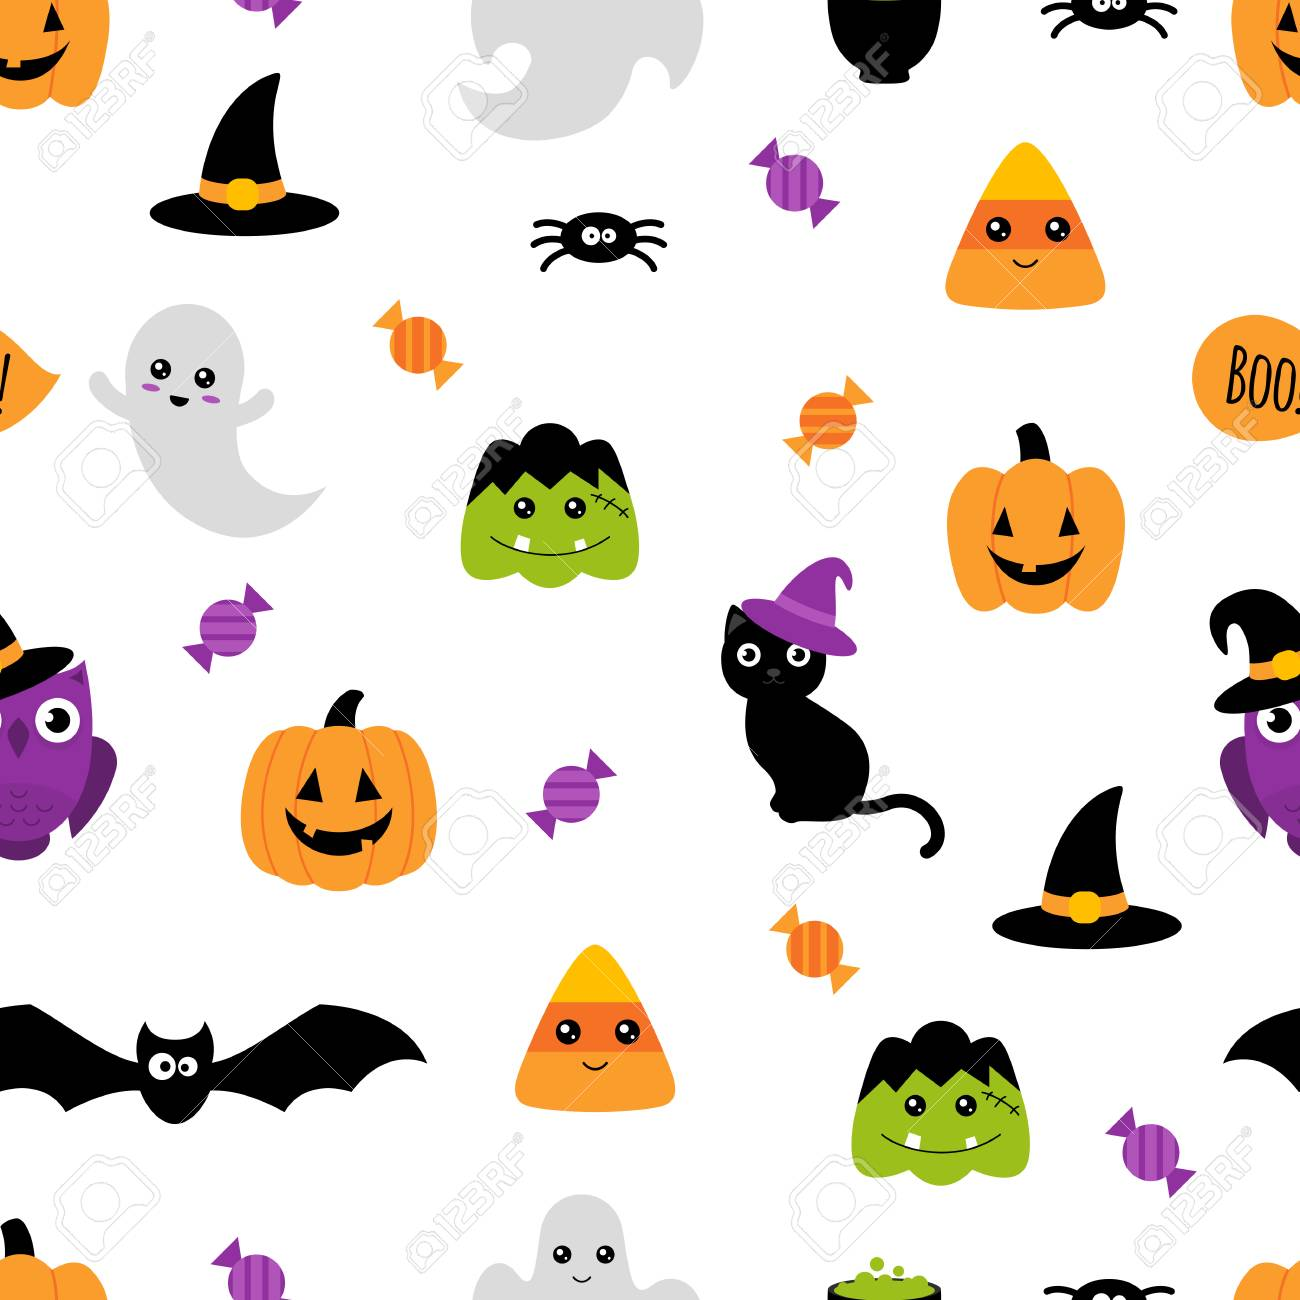 Halloween Seamless Pattern Cute Cartoon Wallpaper Withwhite Royalty Free Cliparts Vectors And Stock Illustration Image 108259353